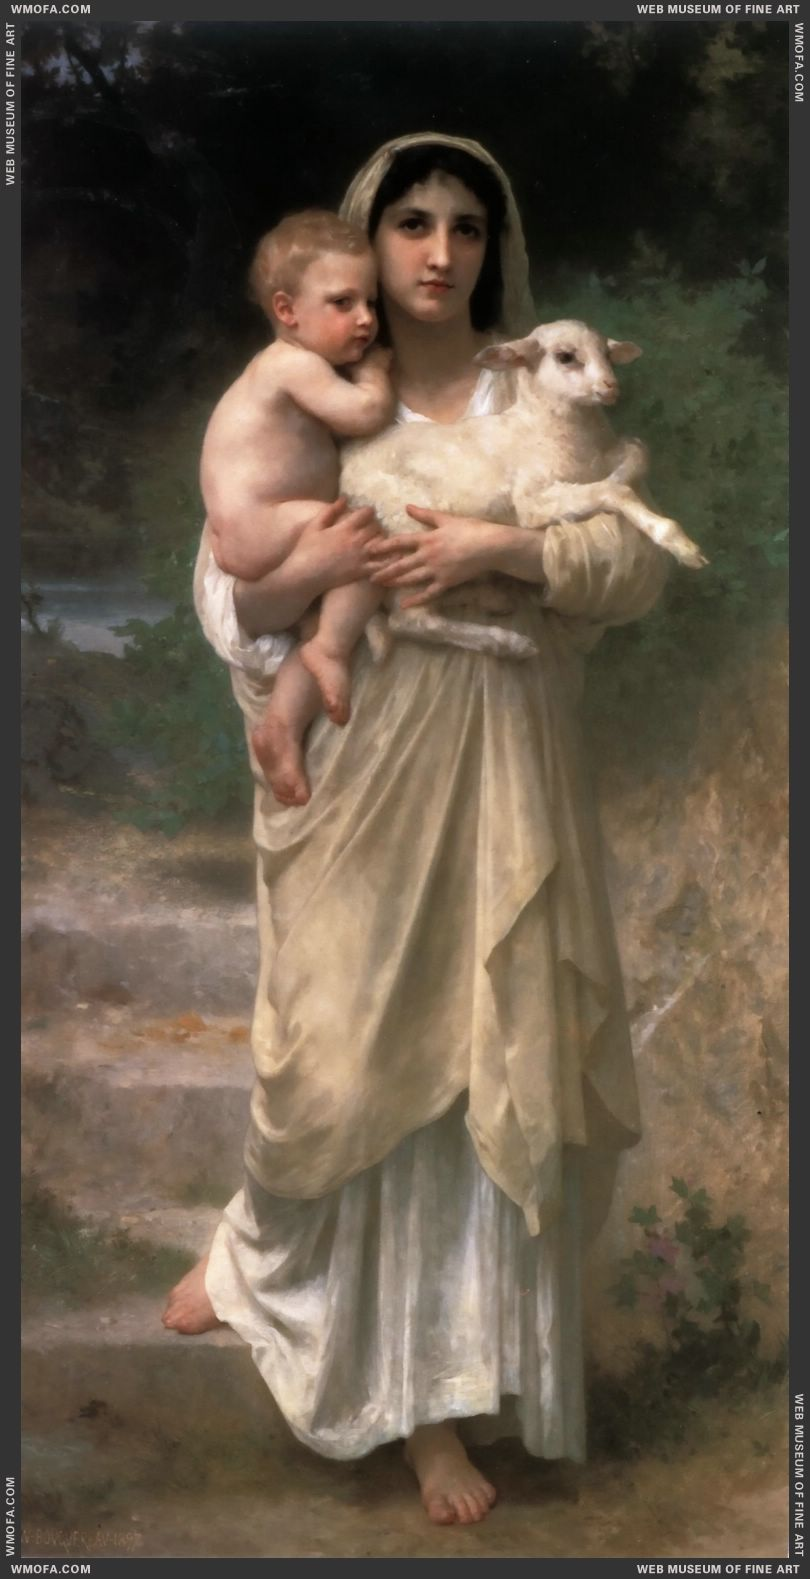 Les Agneaux - Lambs 1897 by Bouguereau, William